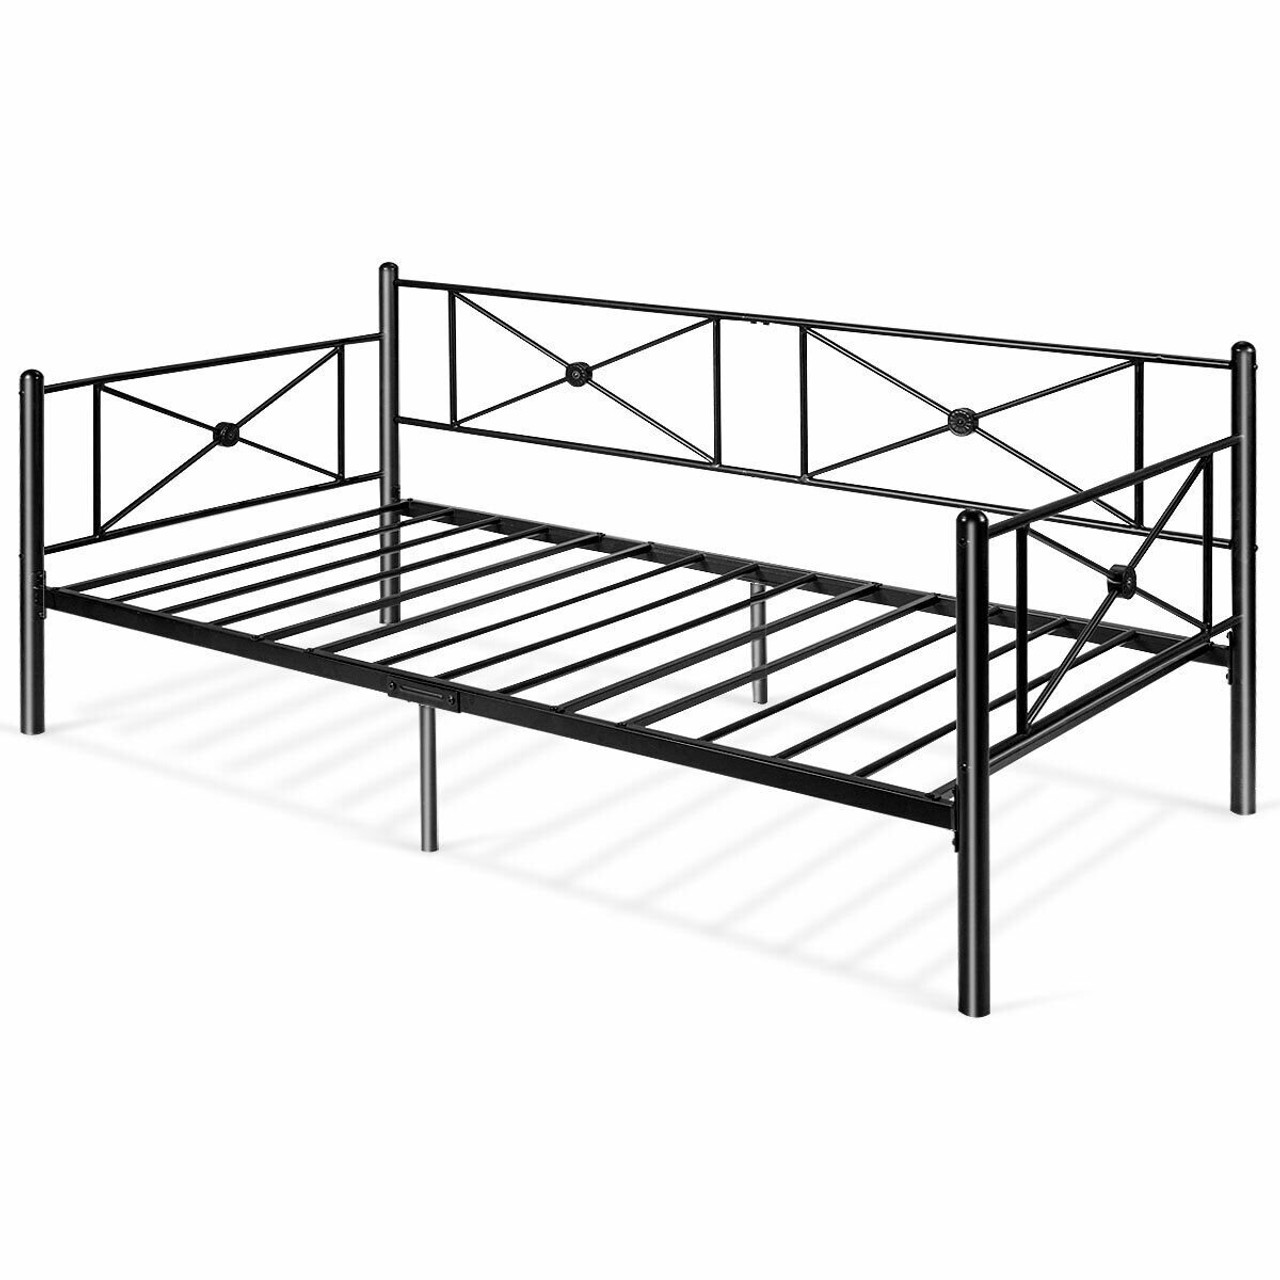 Metal Daybed Twin Bed Frame Stable Steel Slats Bed Sofa Hw61328 By Cw